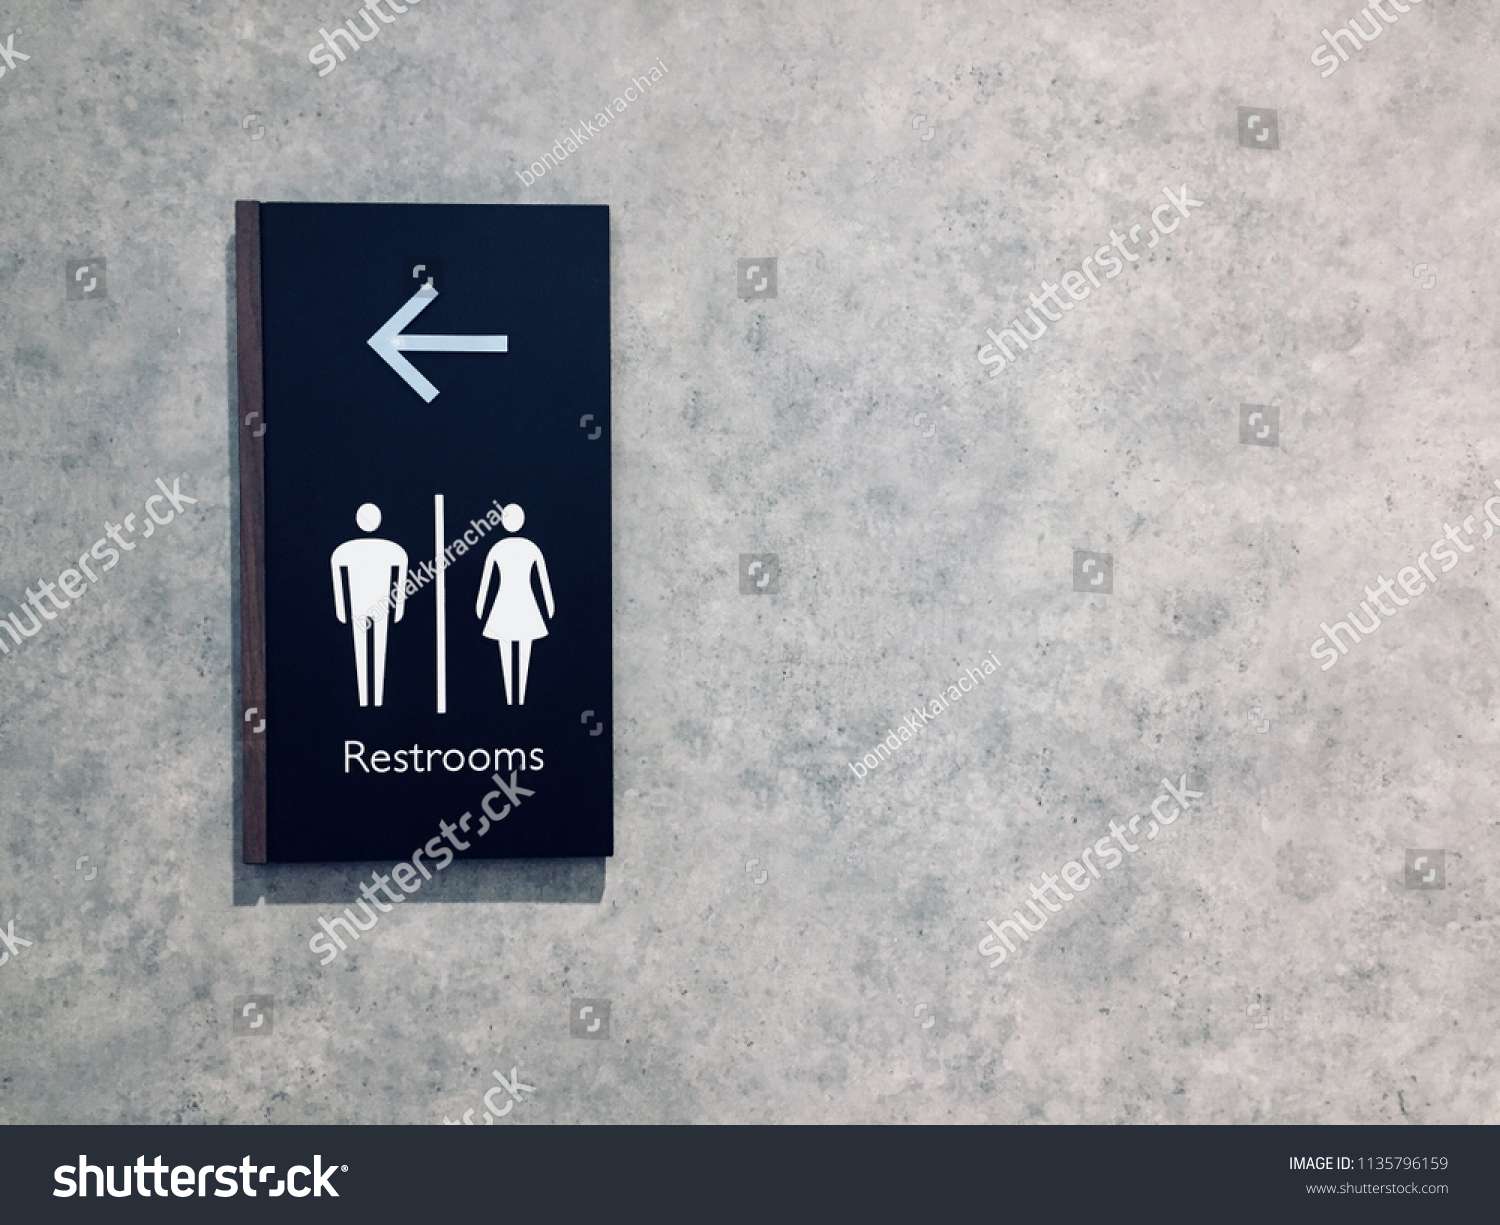 Signs toilet restroom signs toilet icon vintage on the wall background image for